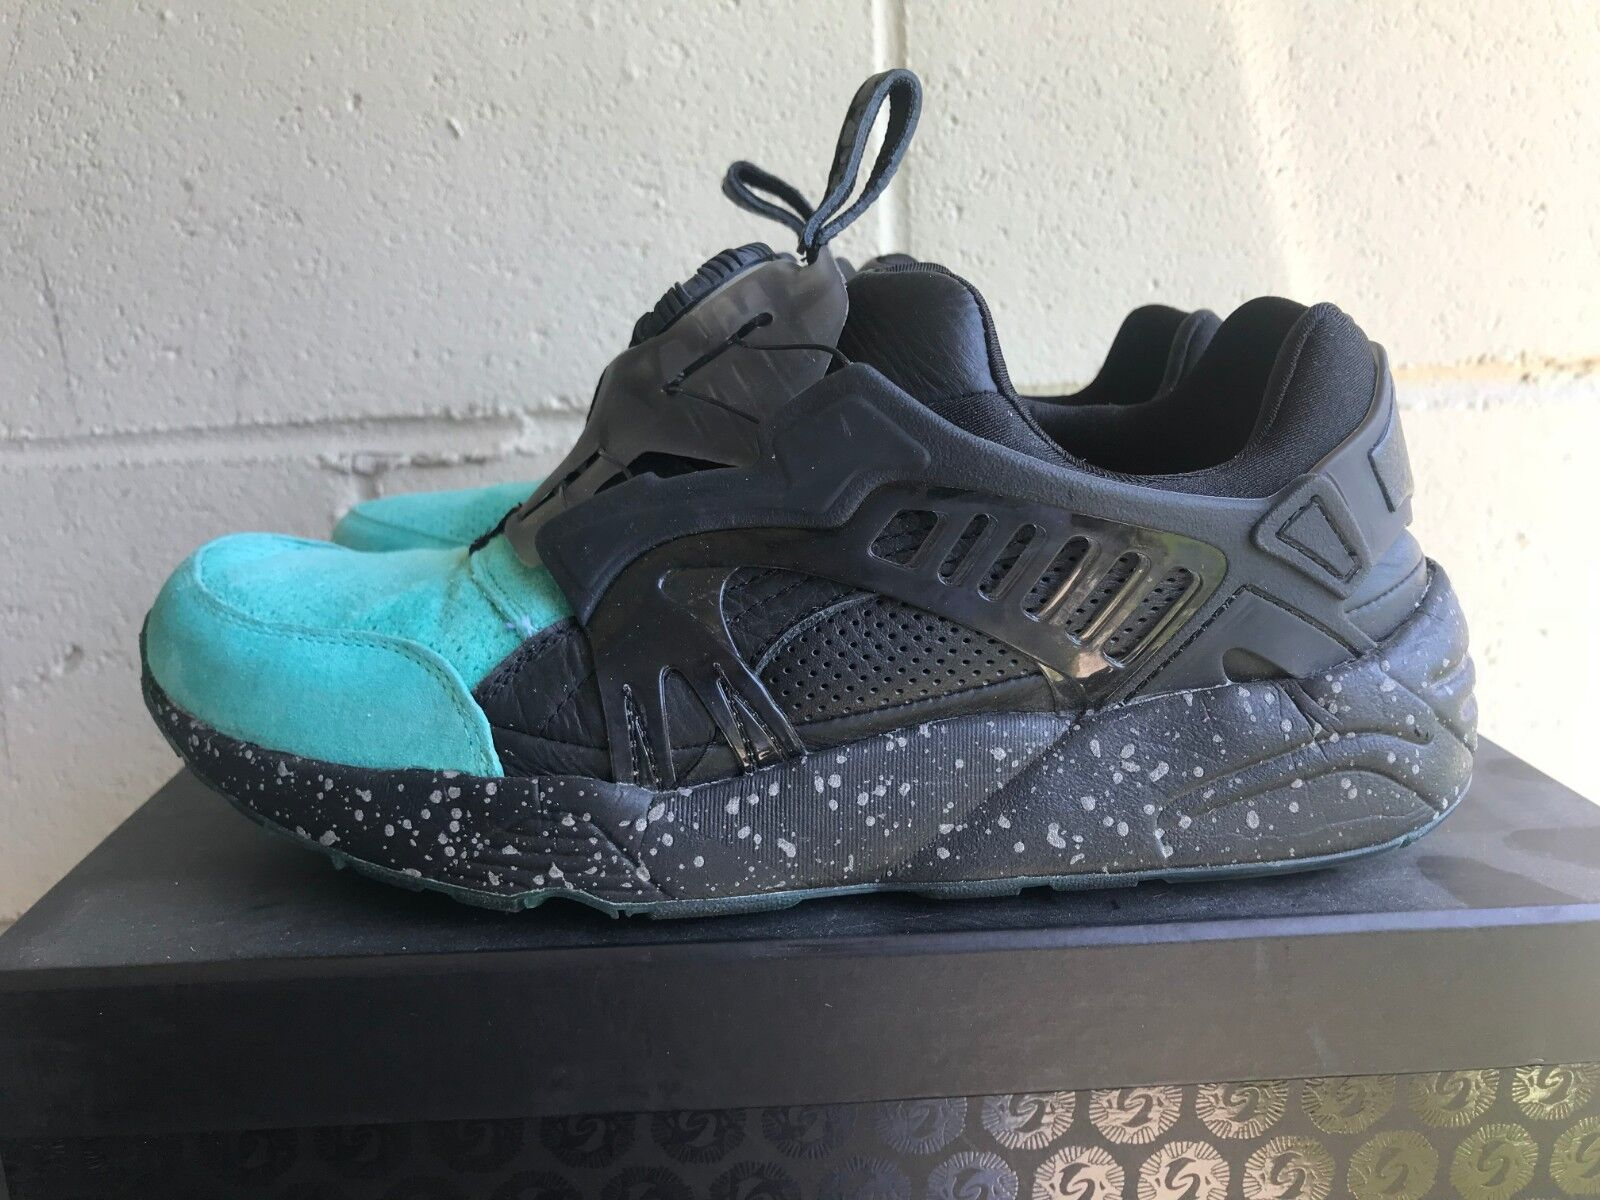 Puma Disc Blaze x Ronnie Fieg Coat Of Arms Mint COA RF Size 7.5